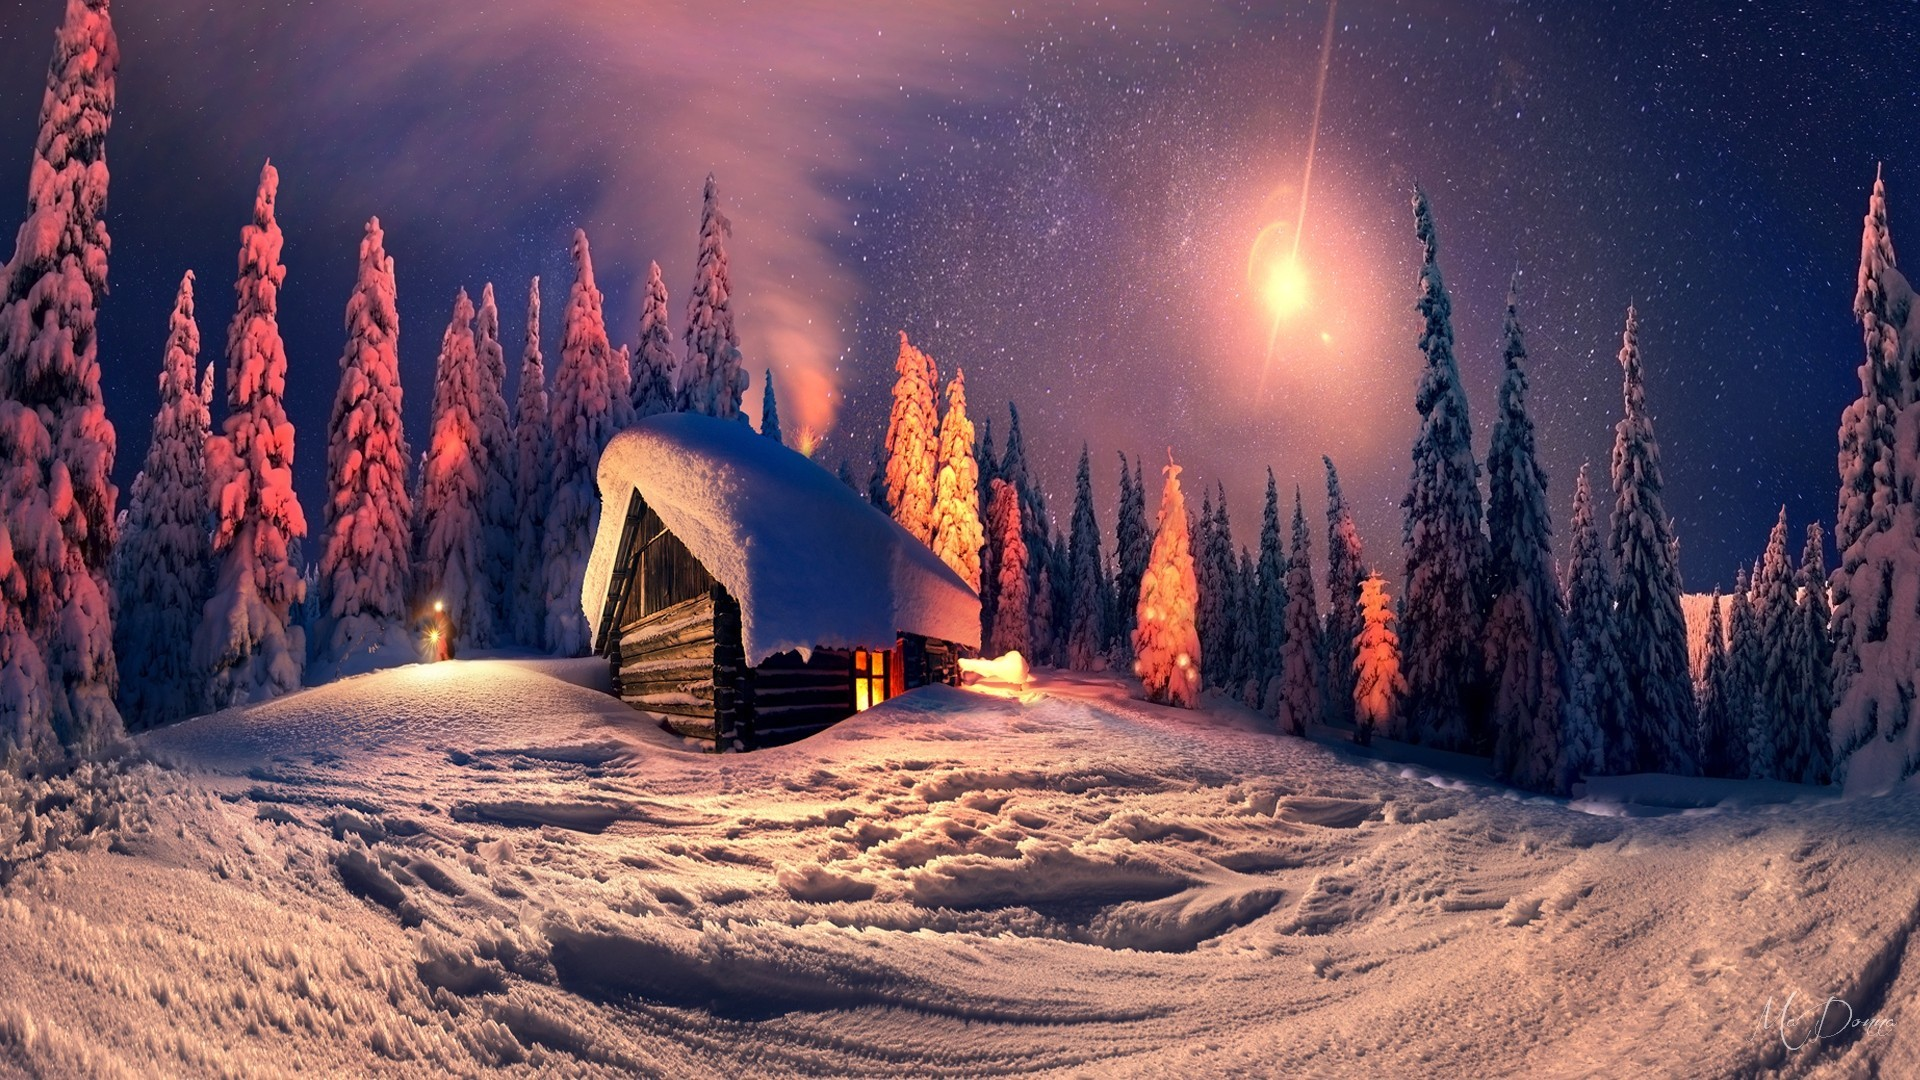 3d Snowy Cottage Animated Wallpaper Free Download Winter Cabin Wallpaper For Desktop 57 Images